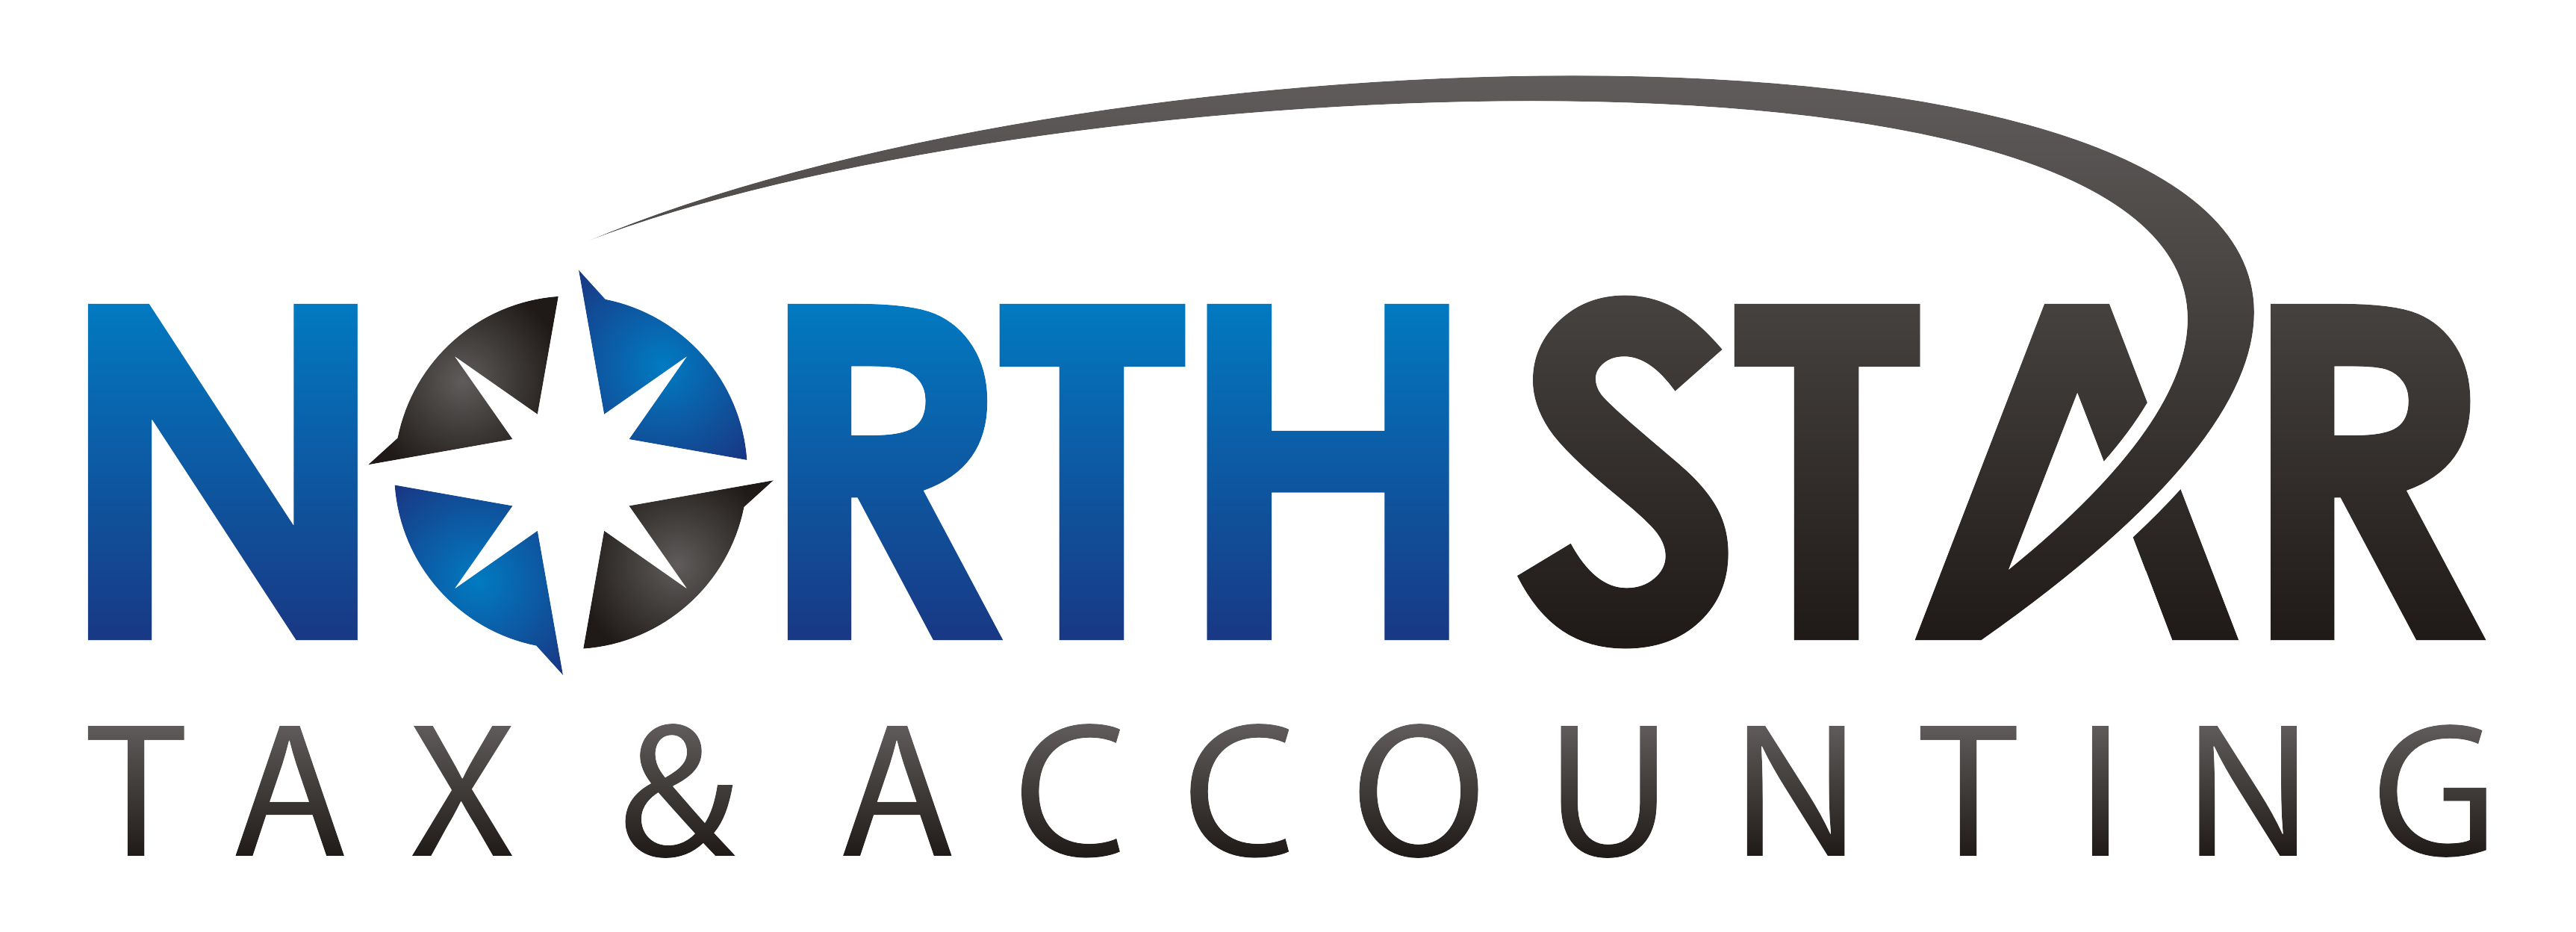 Northstar Tax and Accounting, Snohomish County CPA company